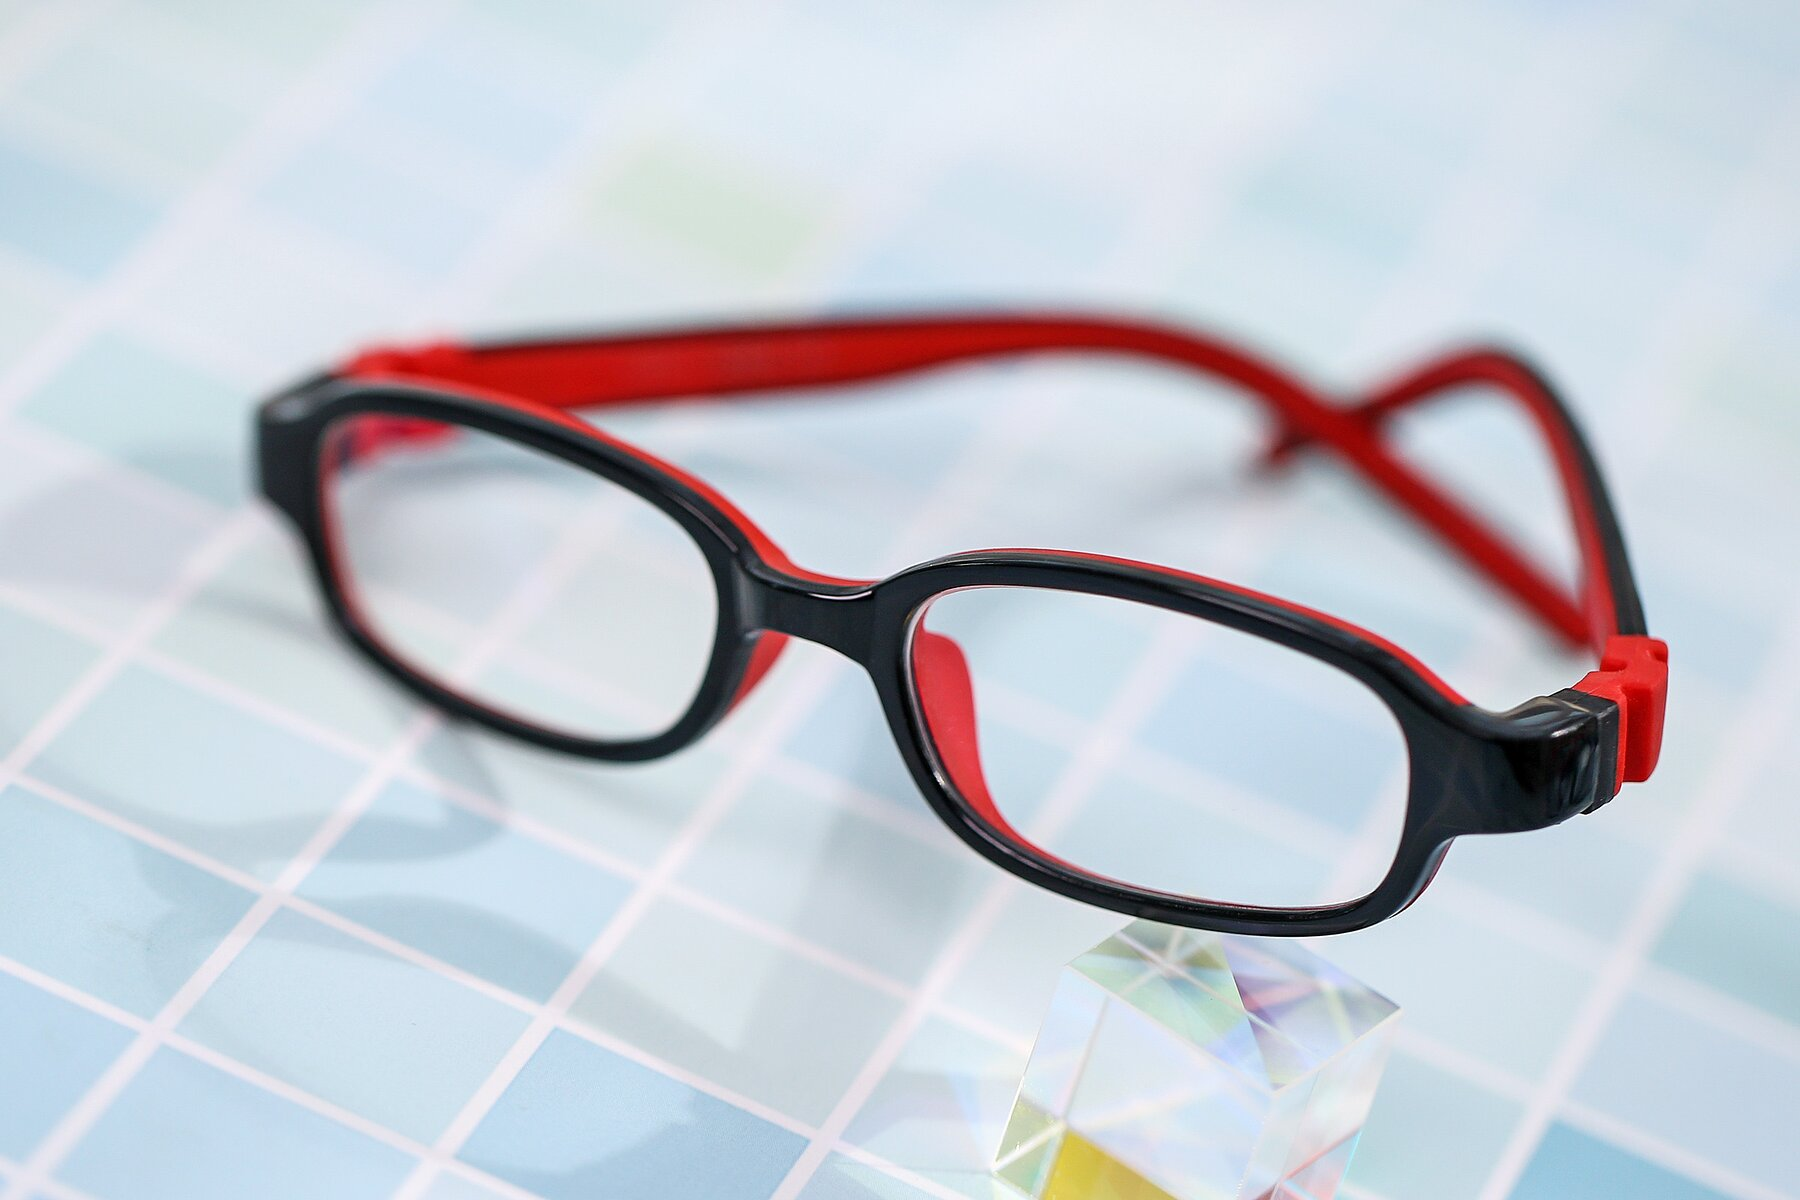 Lifestyle photography #1 of 515 in Black-Red with Clear Eyeglass Lenses